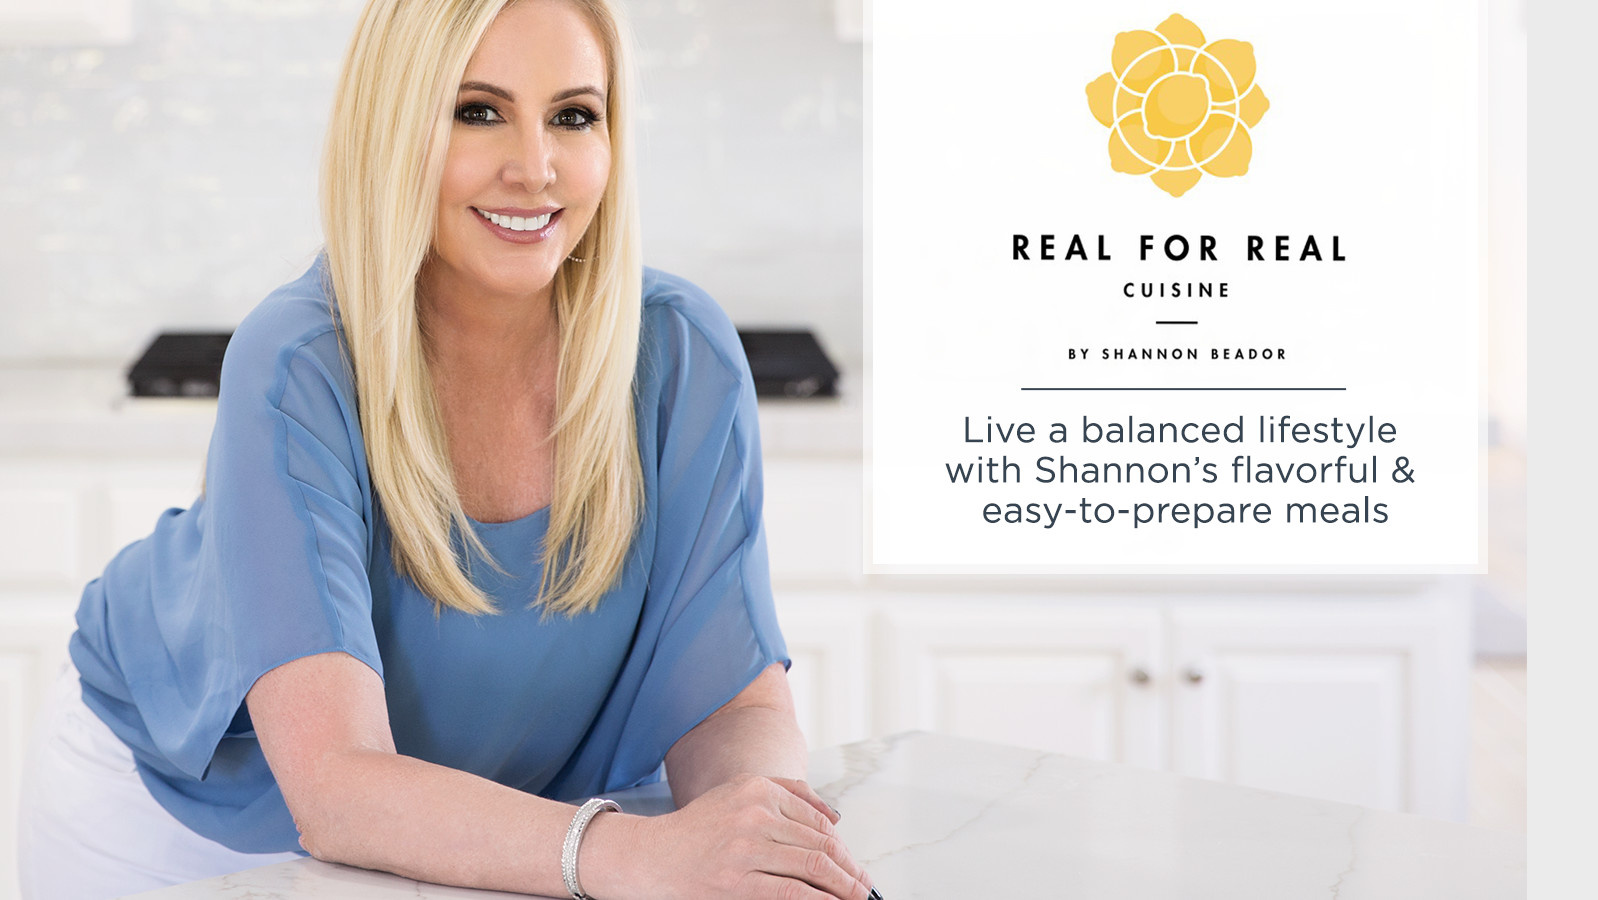 Real for Real Cuisine.  Live a balanced lifestyle with Shannon's flavorful & easy-to-prepare meals.